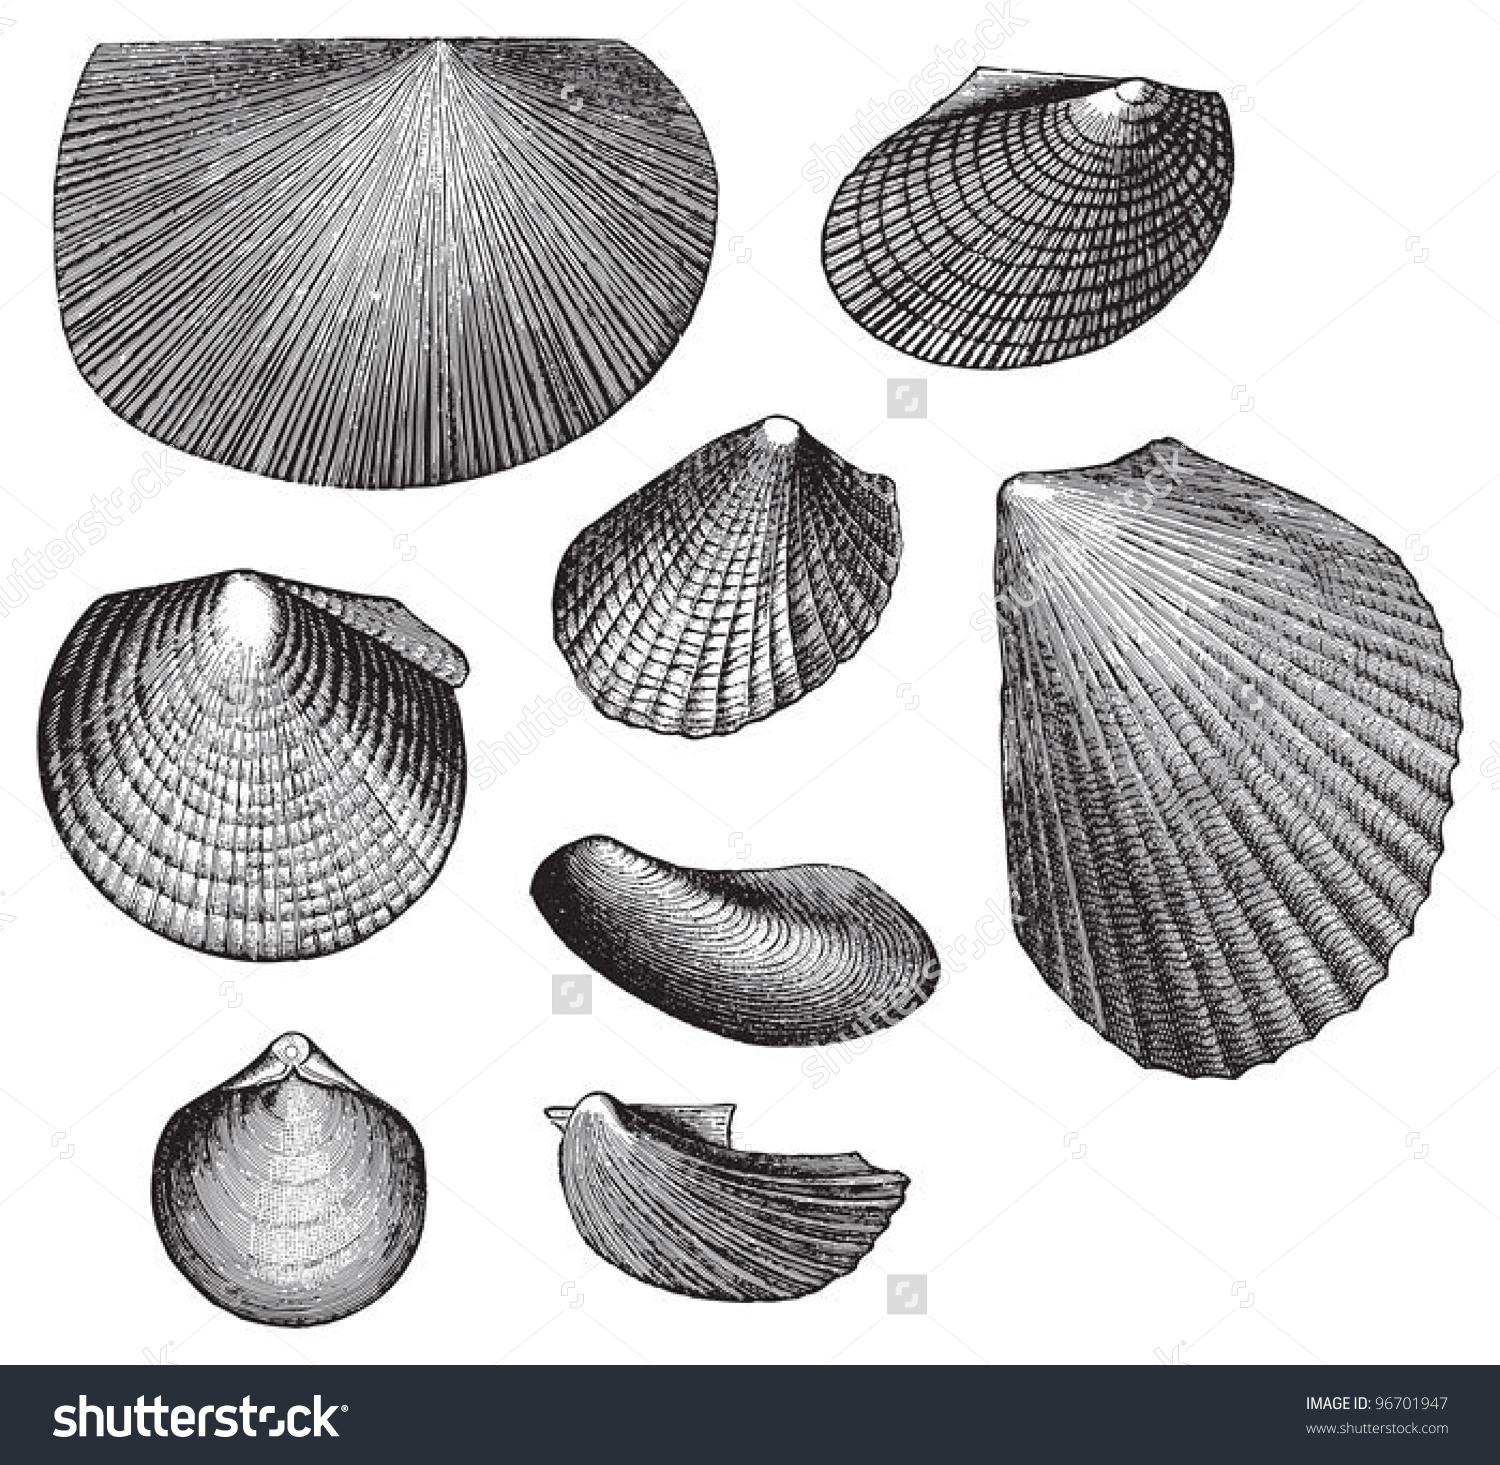 Fossil Shell Triassic Period Vintage Illustration Stock Vector.